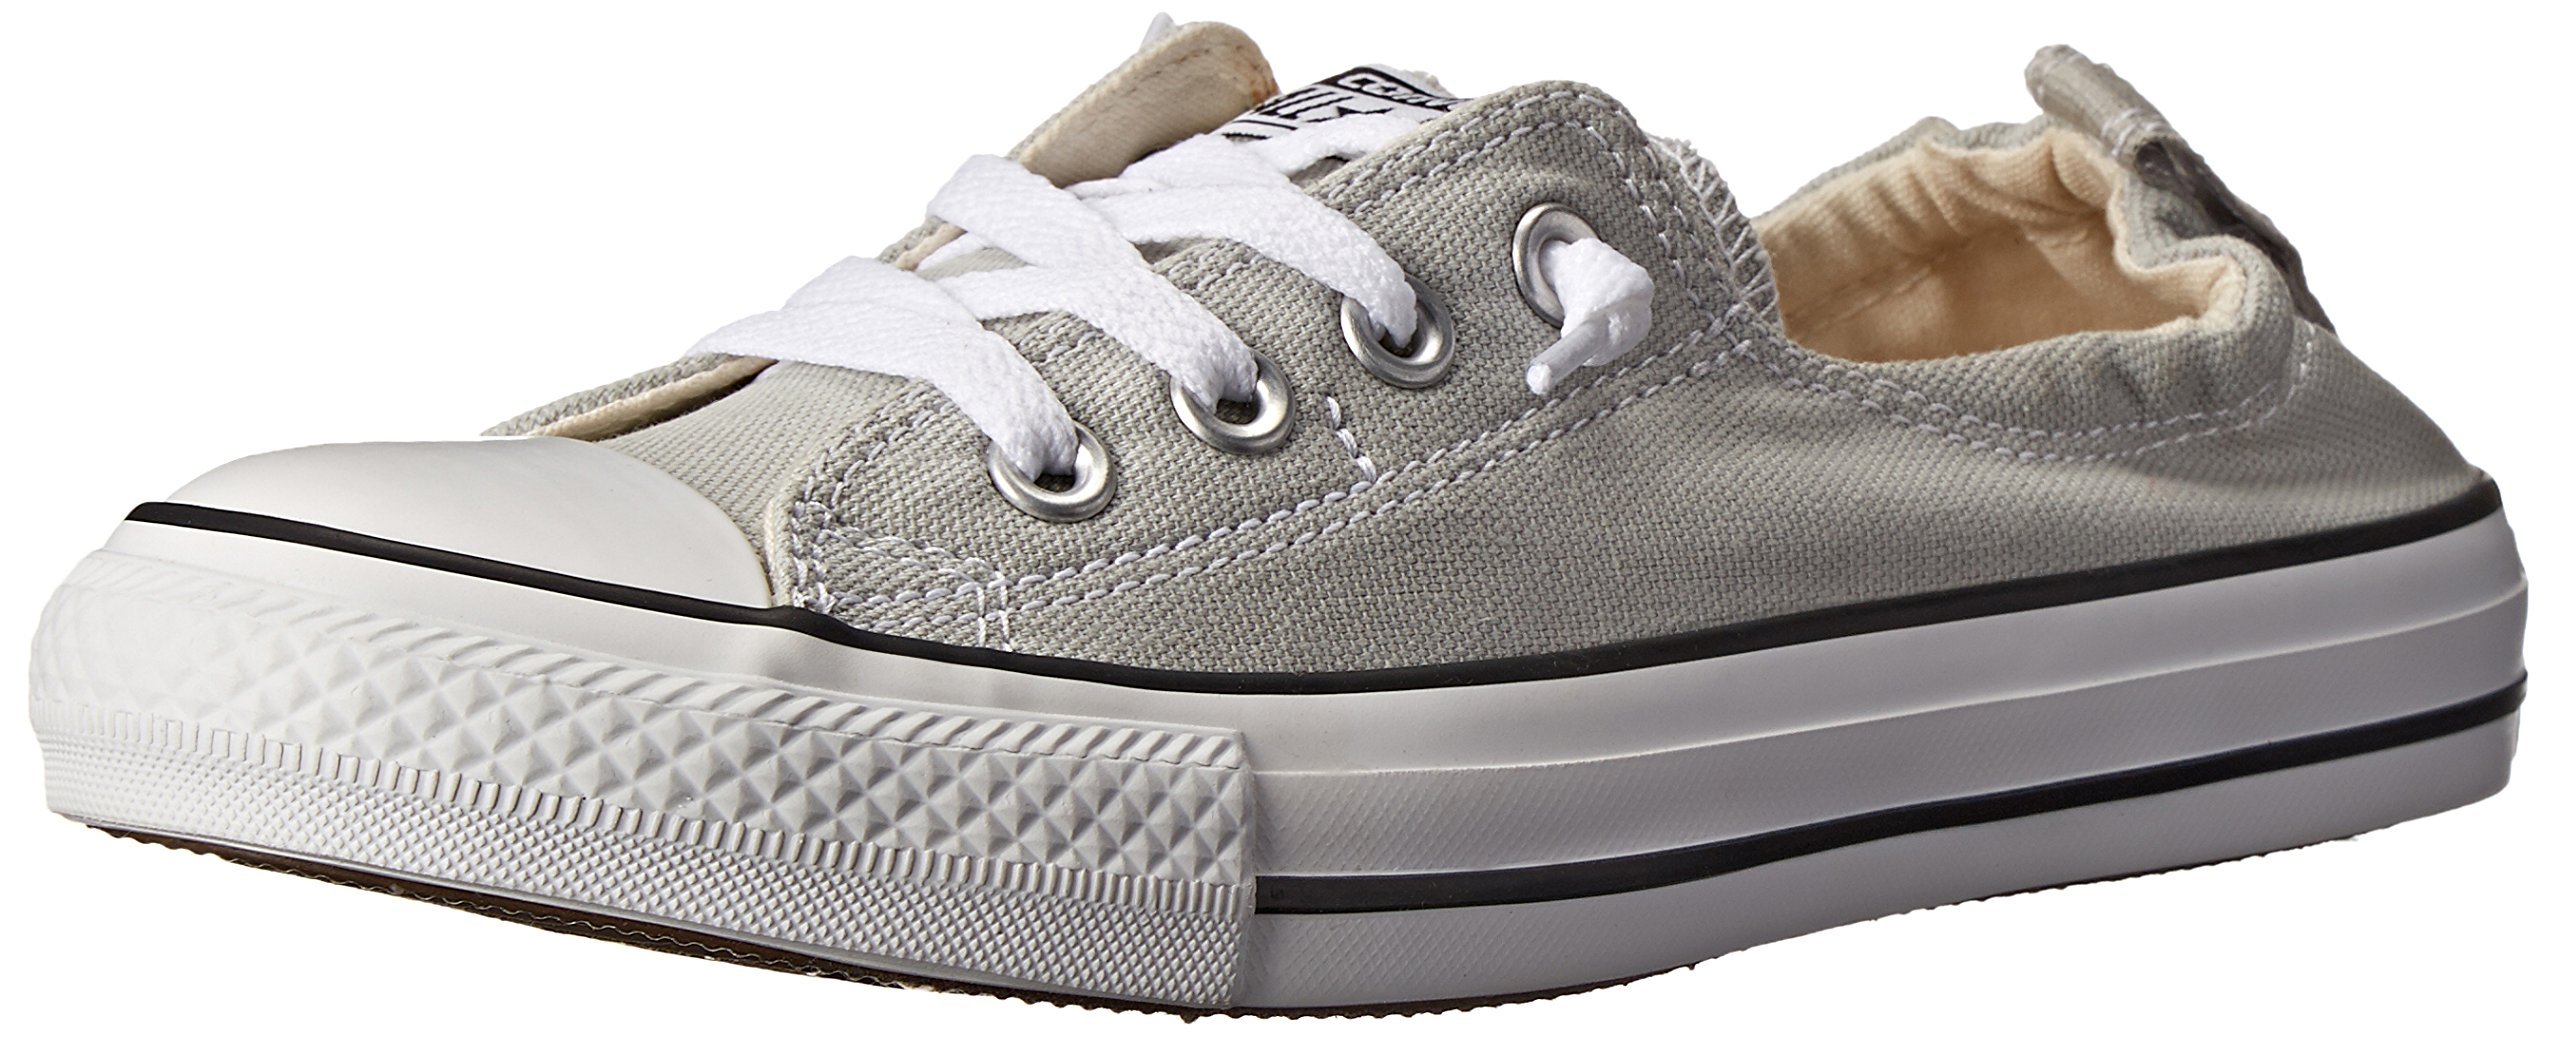 Converse Chuck Taylor All Star Shoreline Gray Lace-Up Sneaker - 9.5 B(M) US